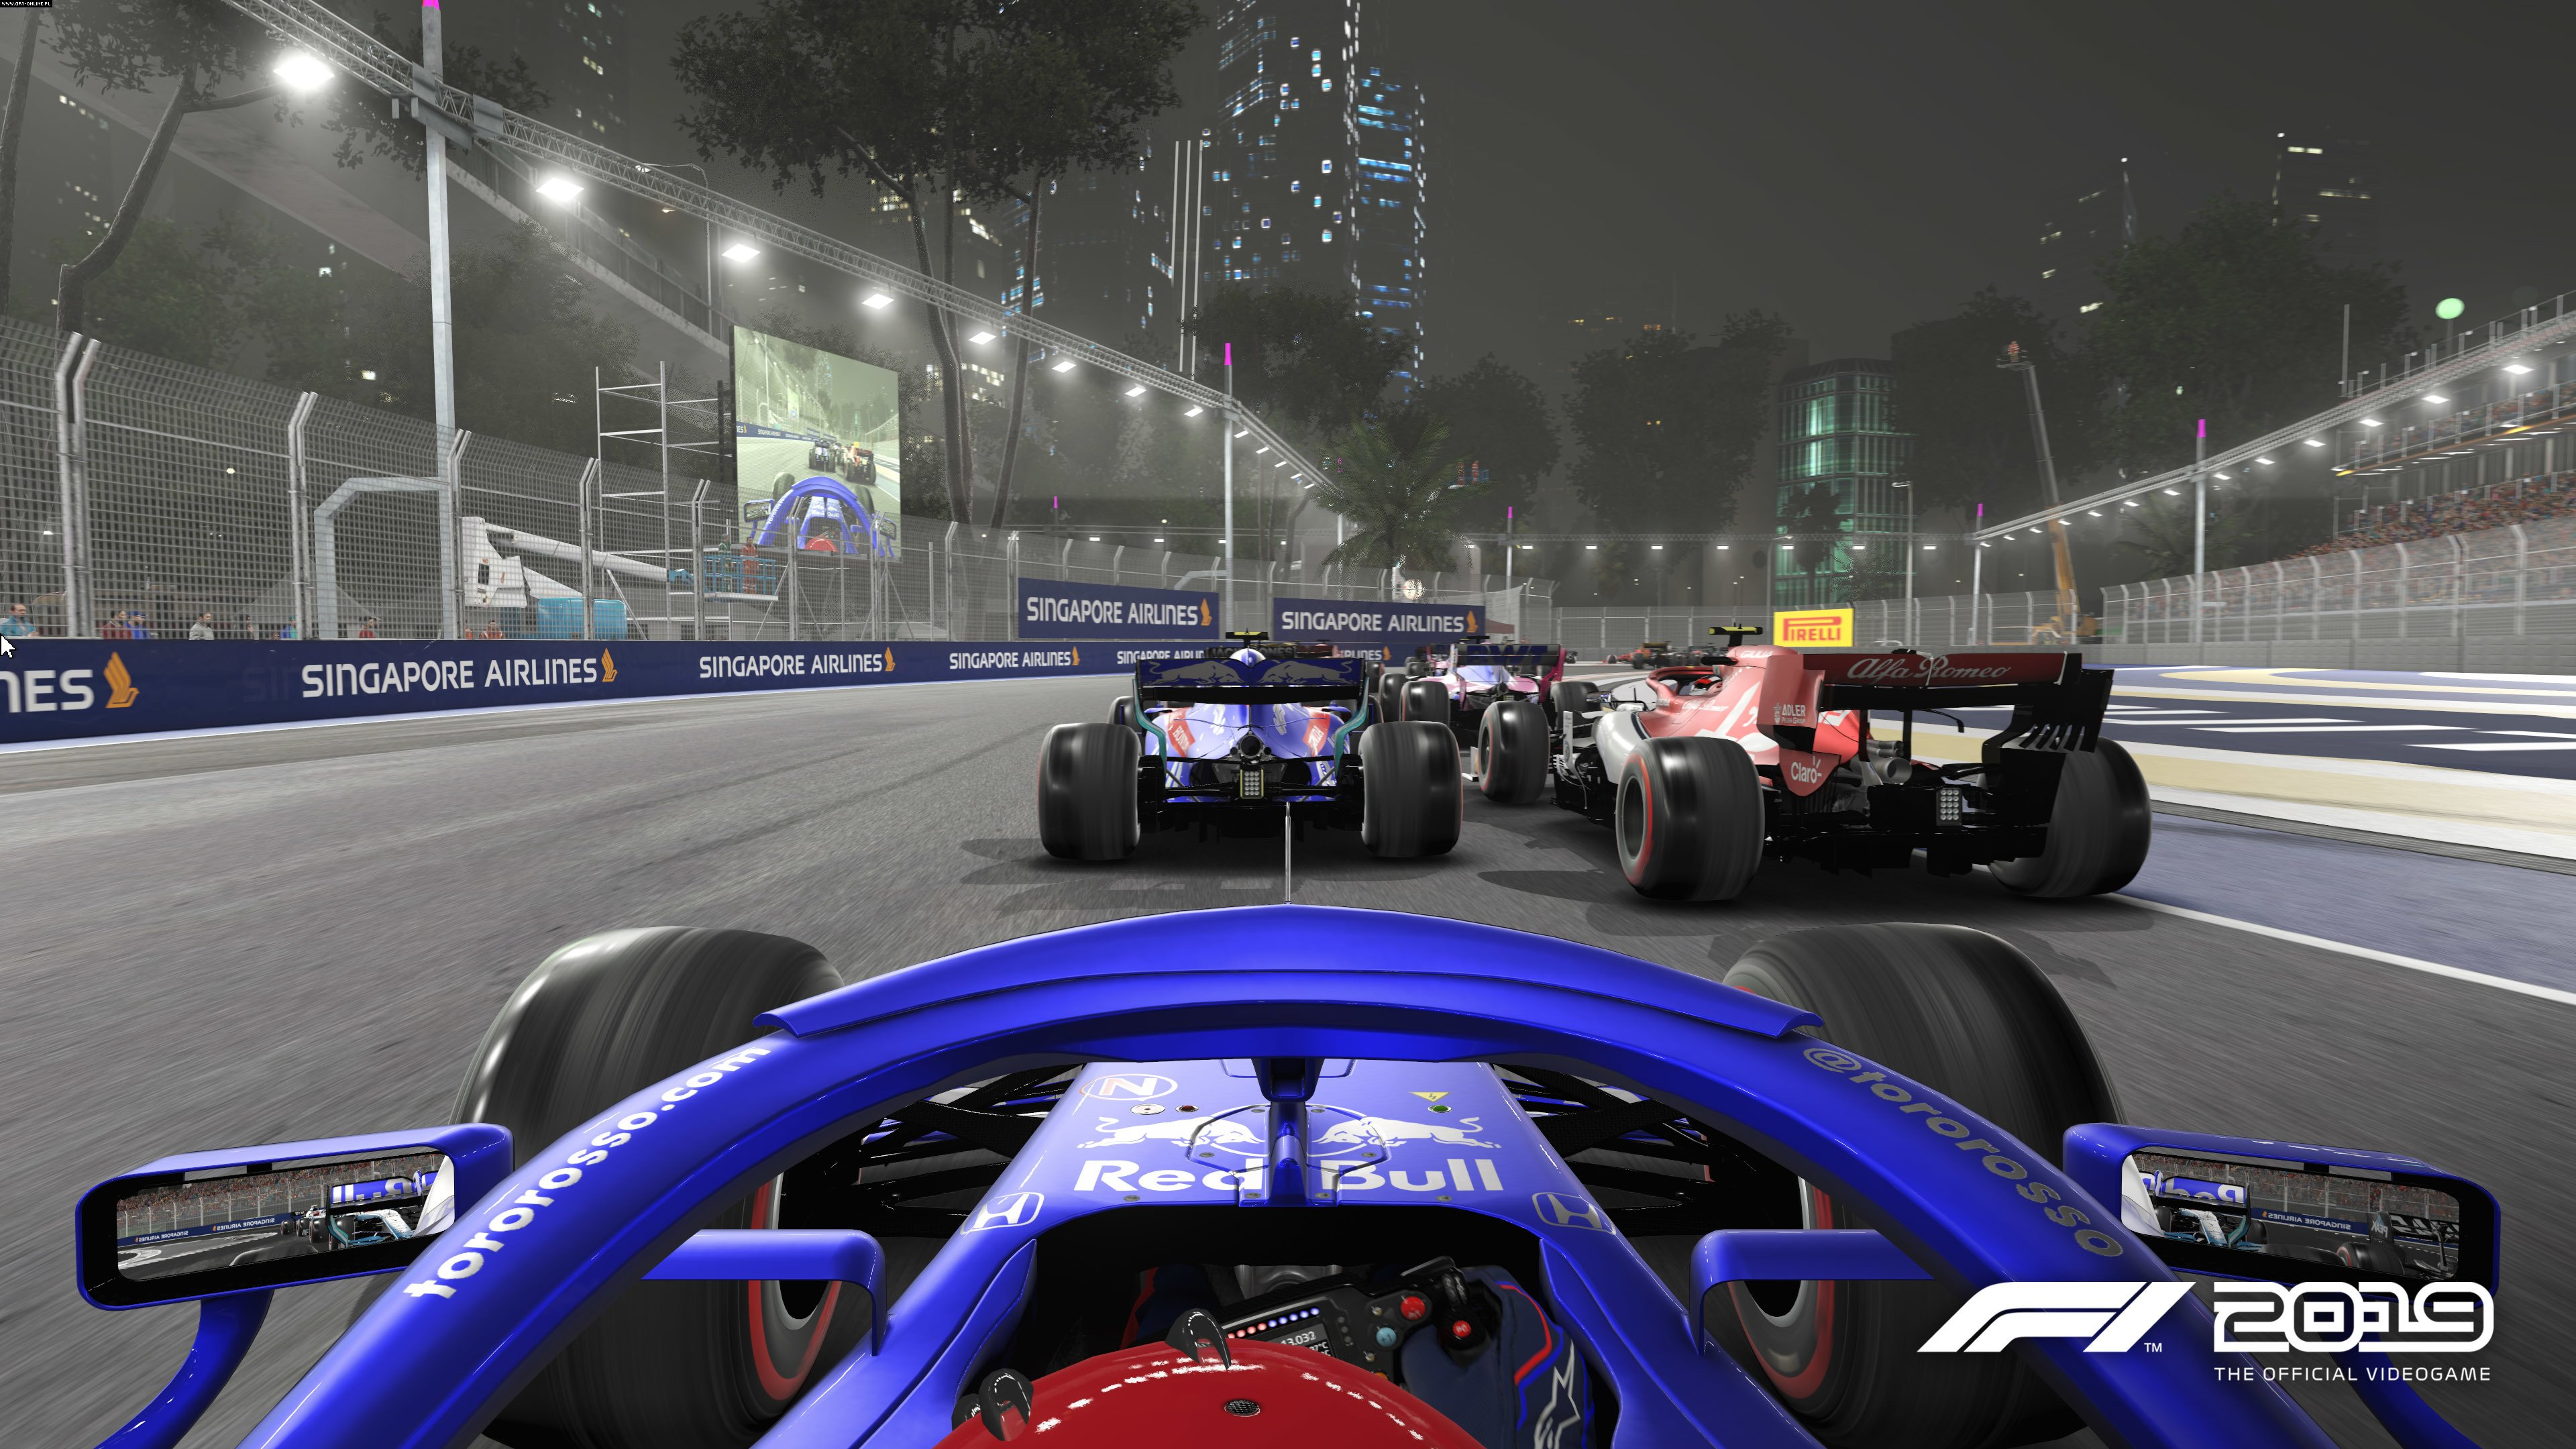 F1 2019 PC, PS4, XONE Games Image 55/104, Codemasters Software